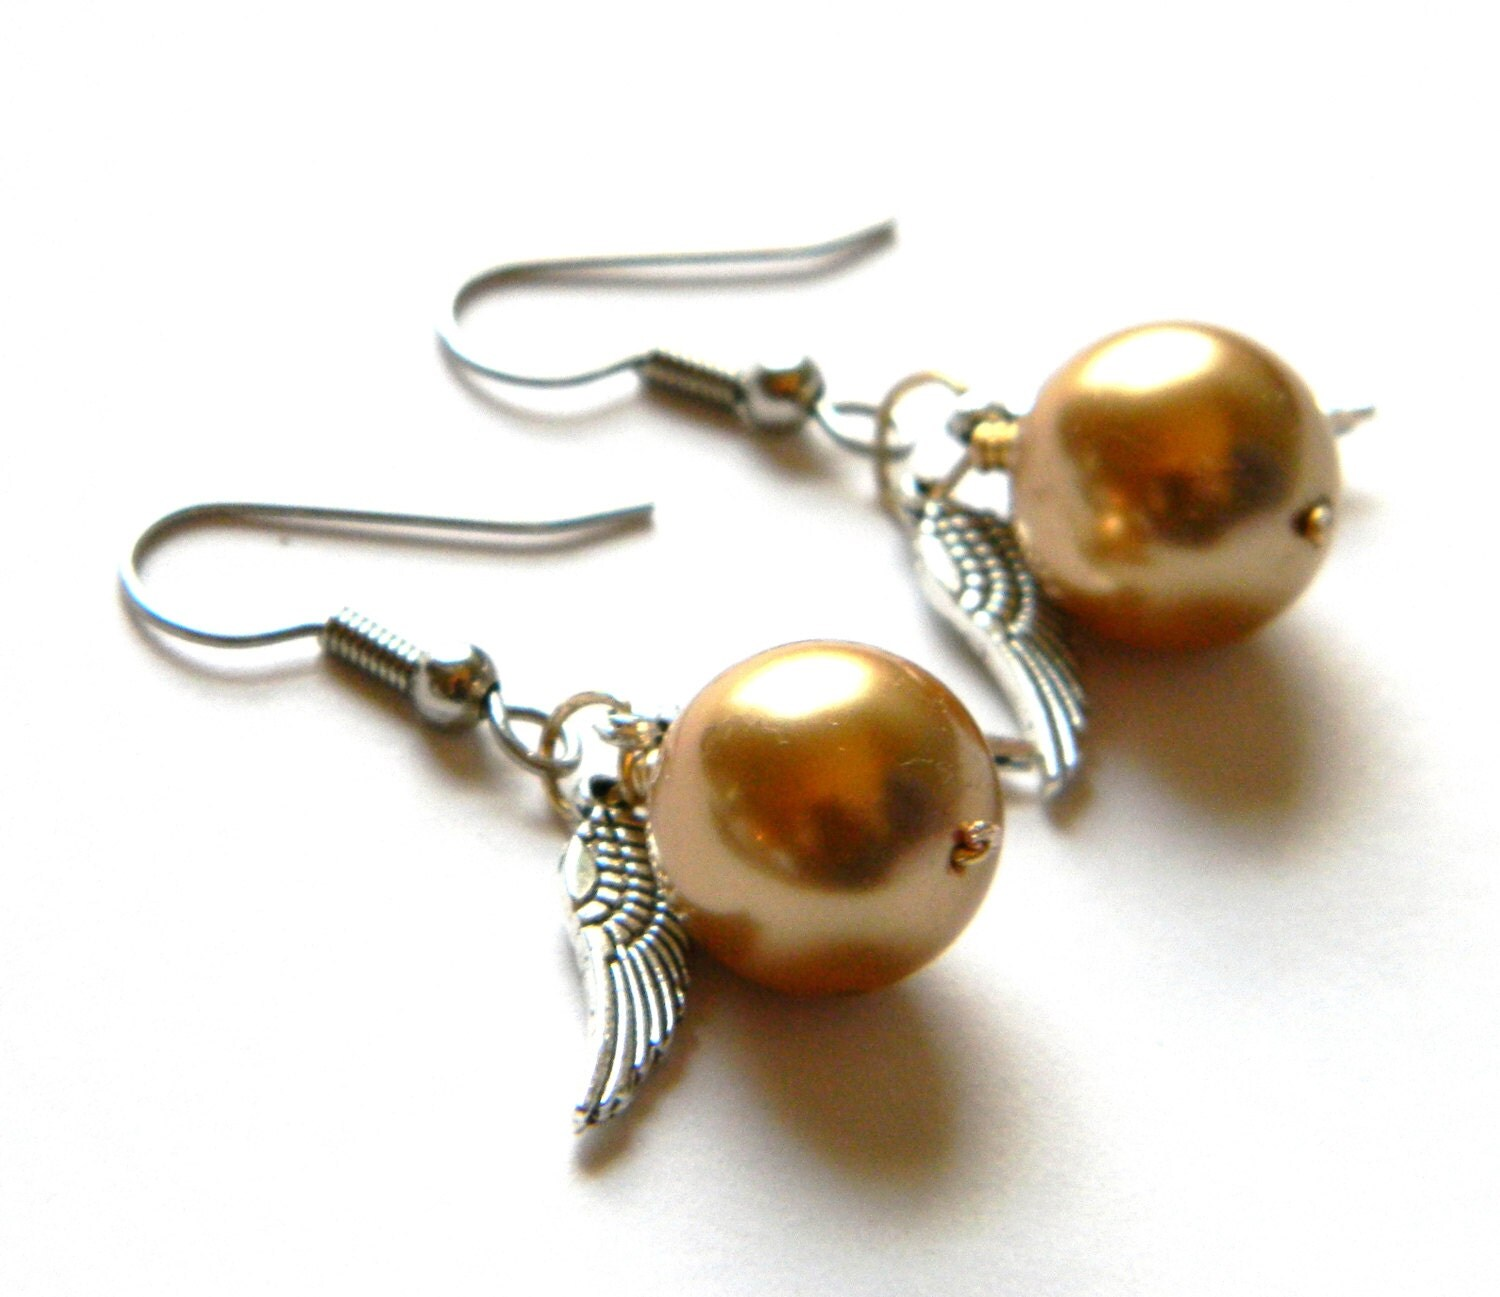 golden snitch earrings golden snitch earrings harry potter jewelry by sammysbeadworks 9515